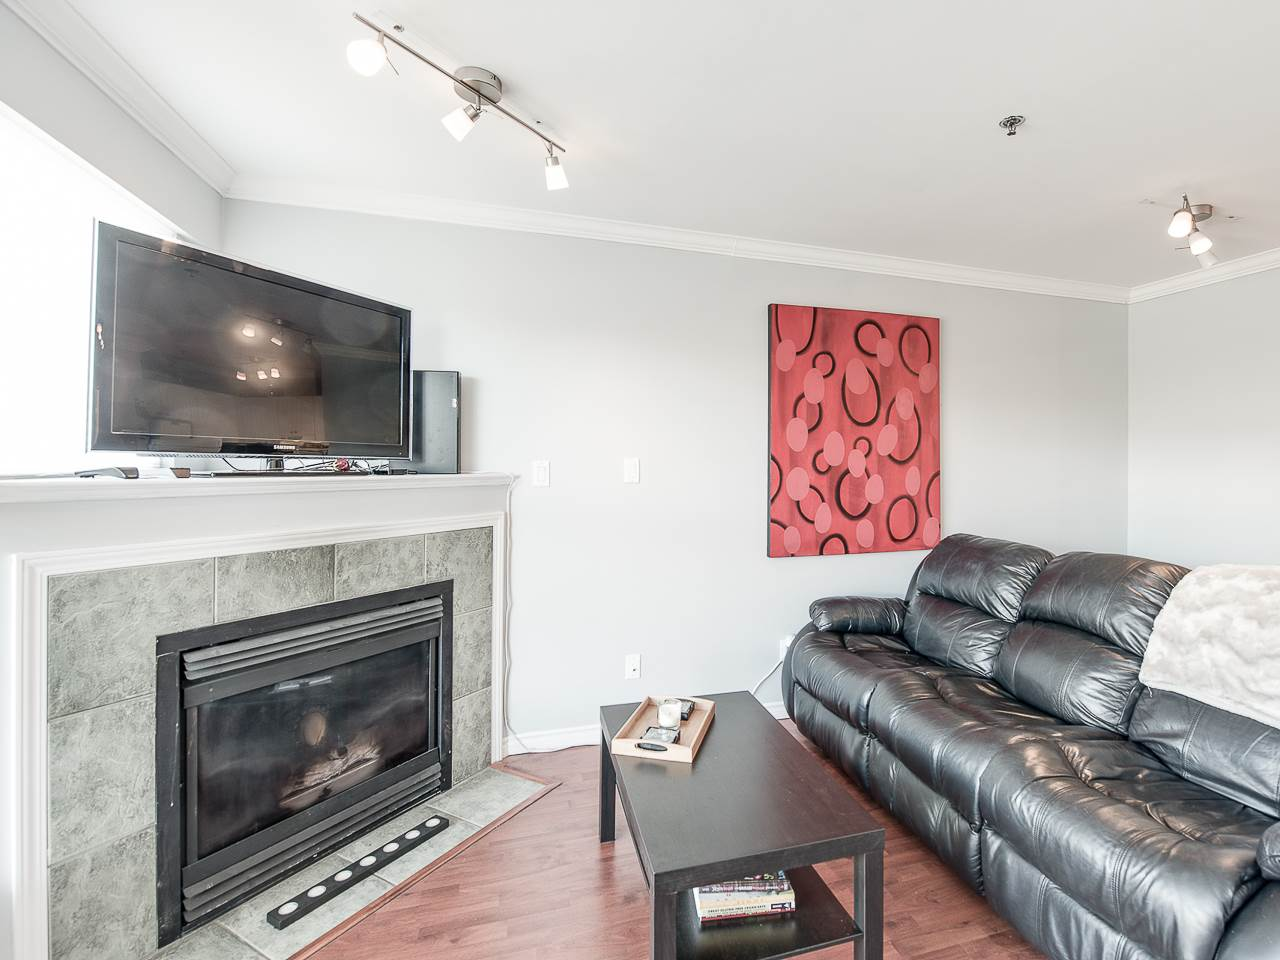 Main Photo: 304 2025 STEPHENS STREET in Vancouver: Kitsilano Condo for sale (Vancouver West)  : MLS®# R2158946